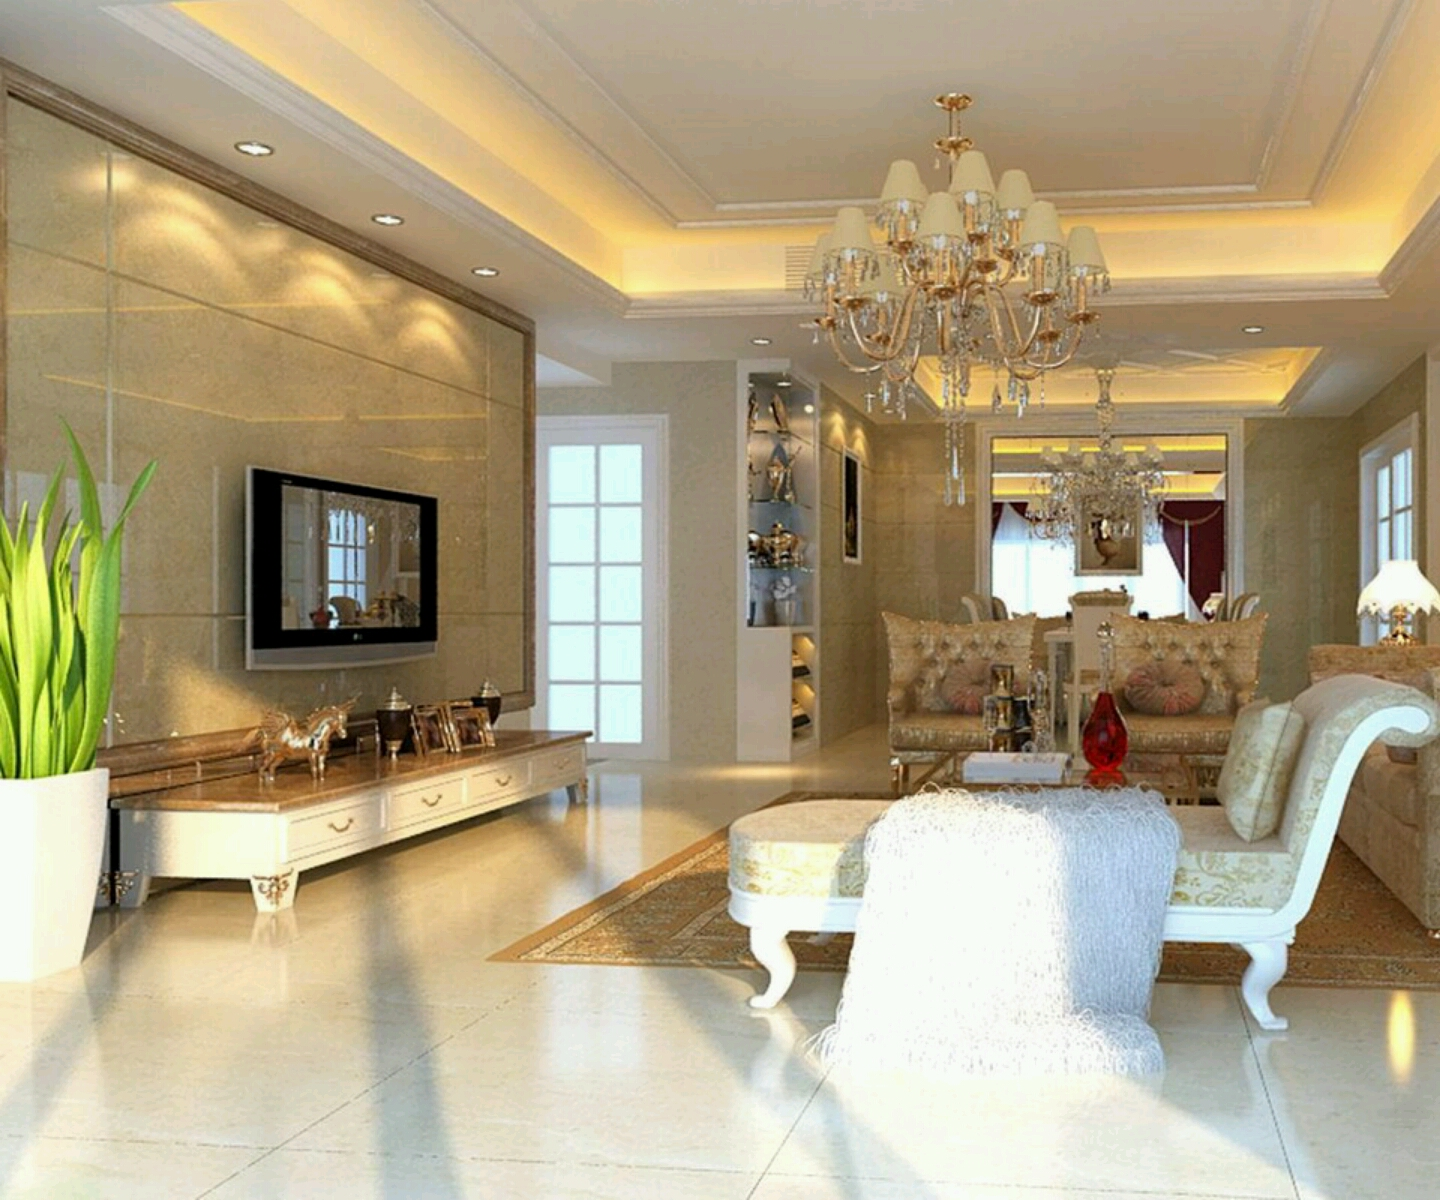 Home decor 2012 luxury homes interior decoration living for Interior designs living rooms